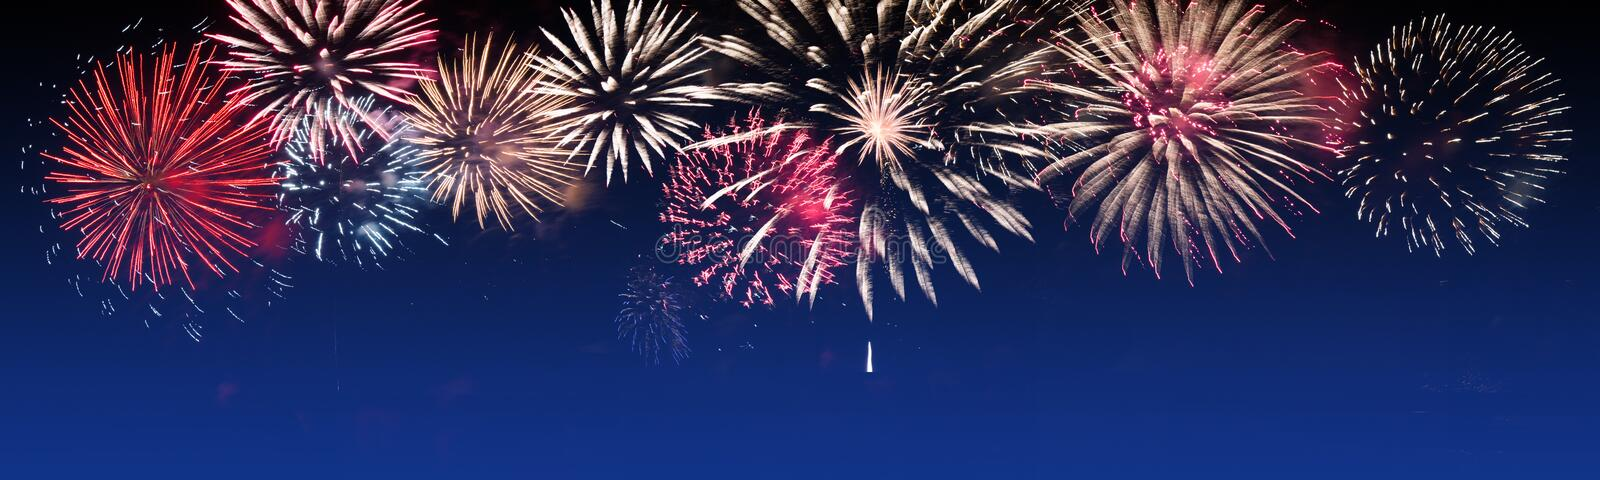 Brightly Colorful Fireworks on twilight background - party celebration stock photos